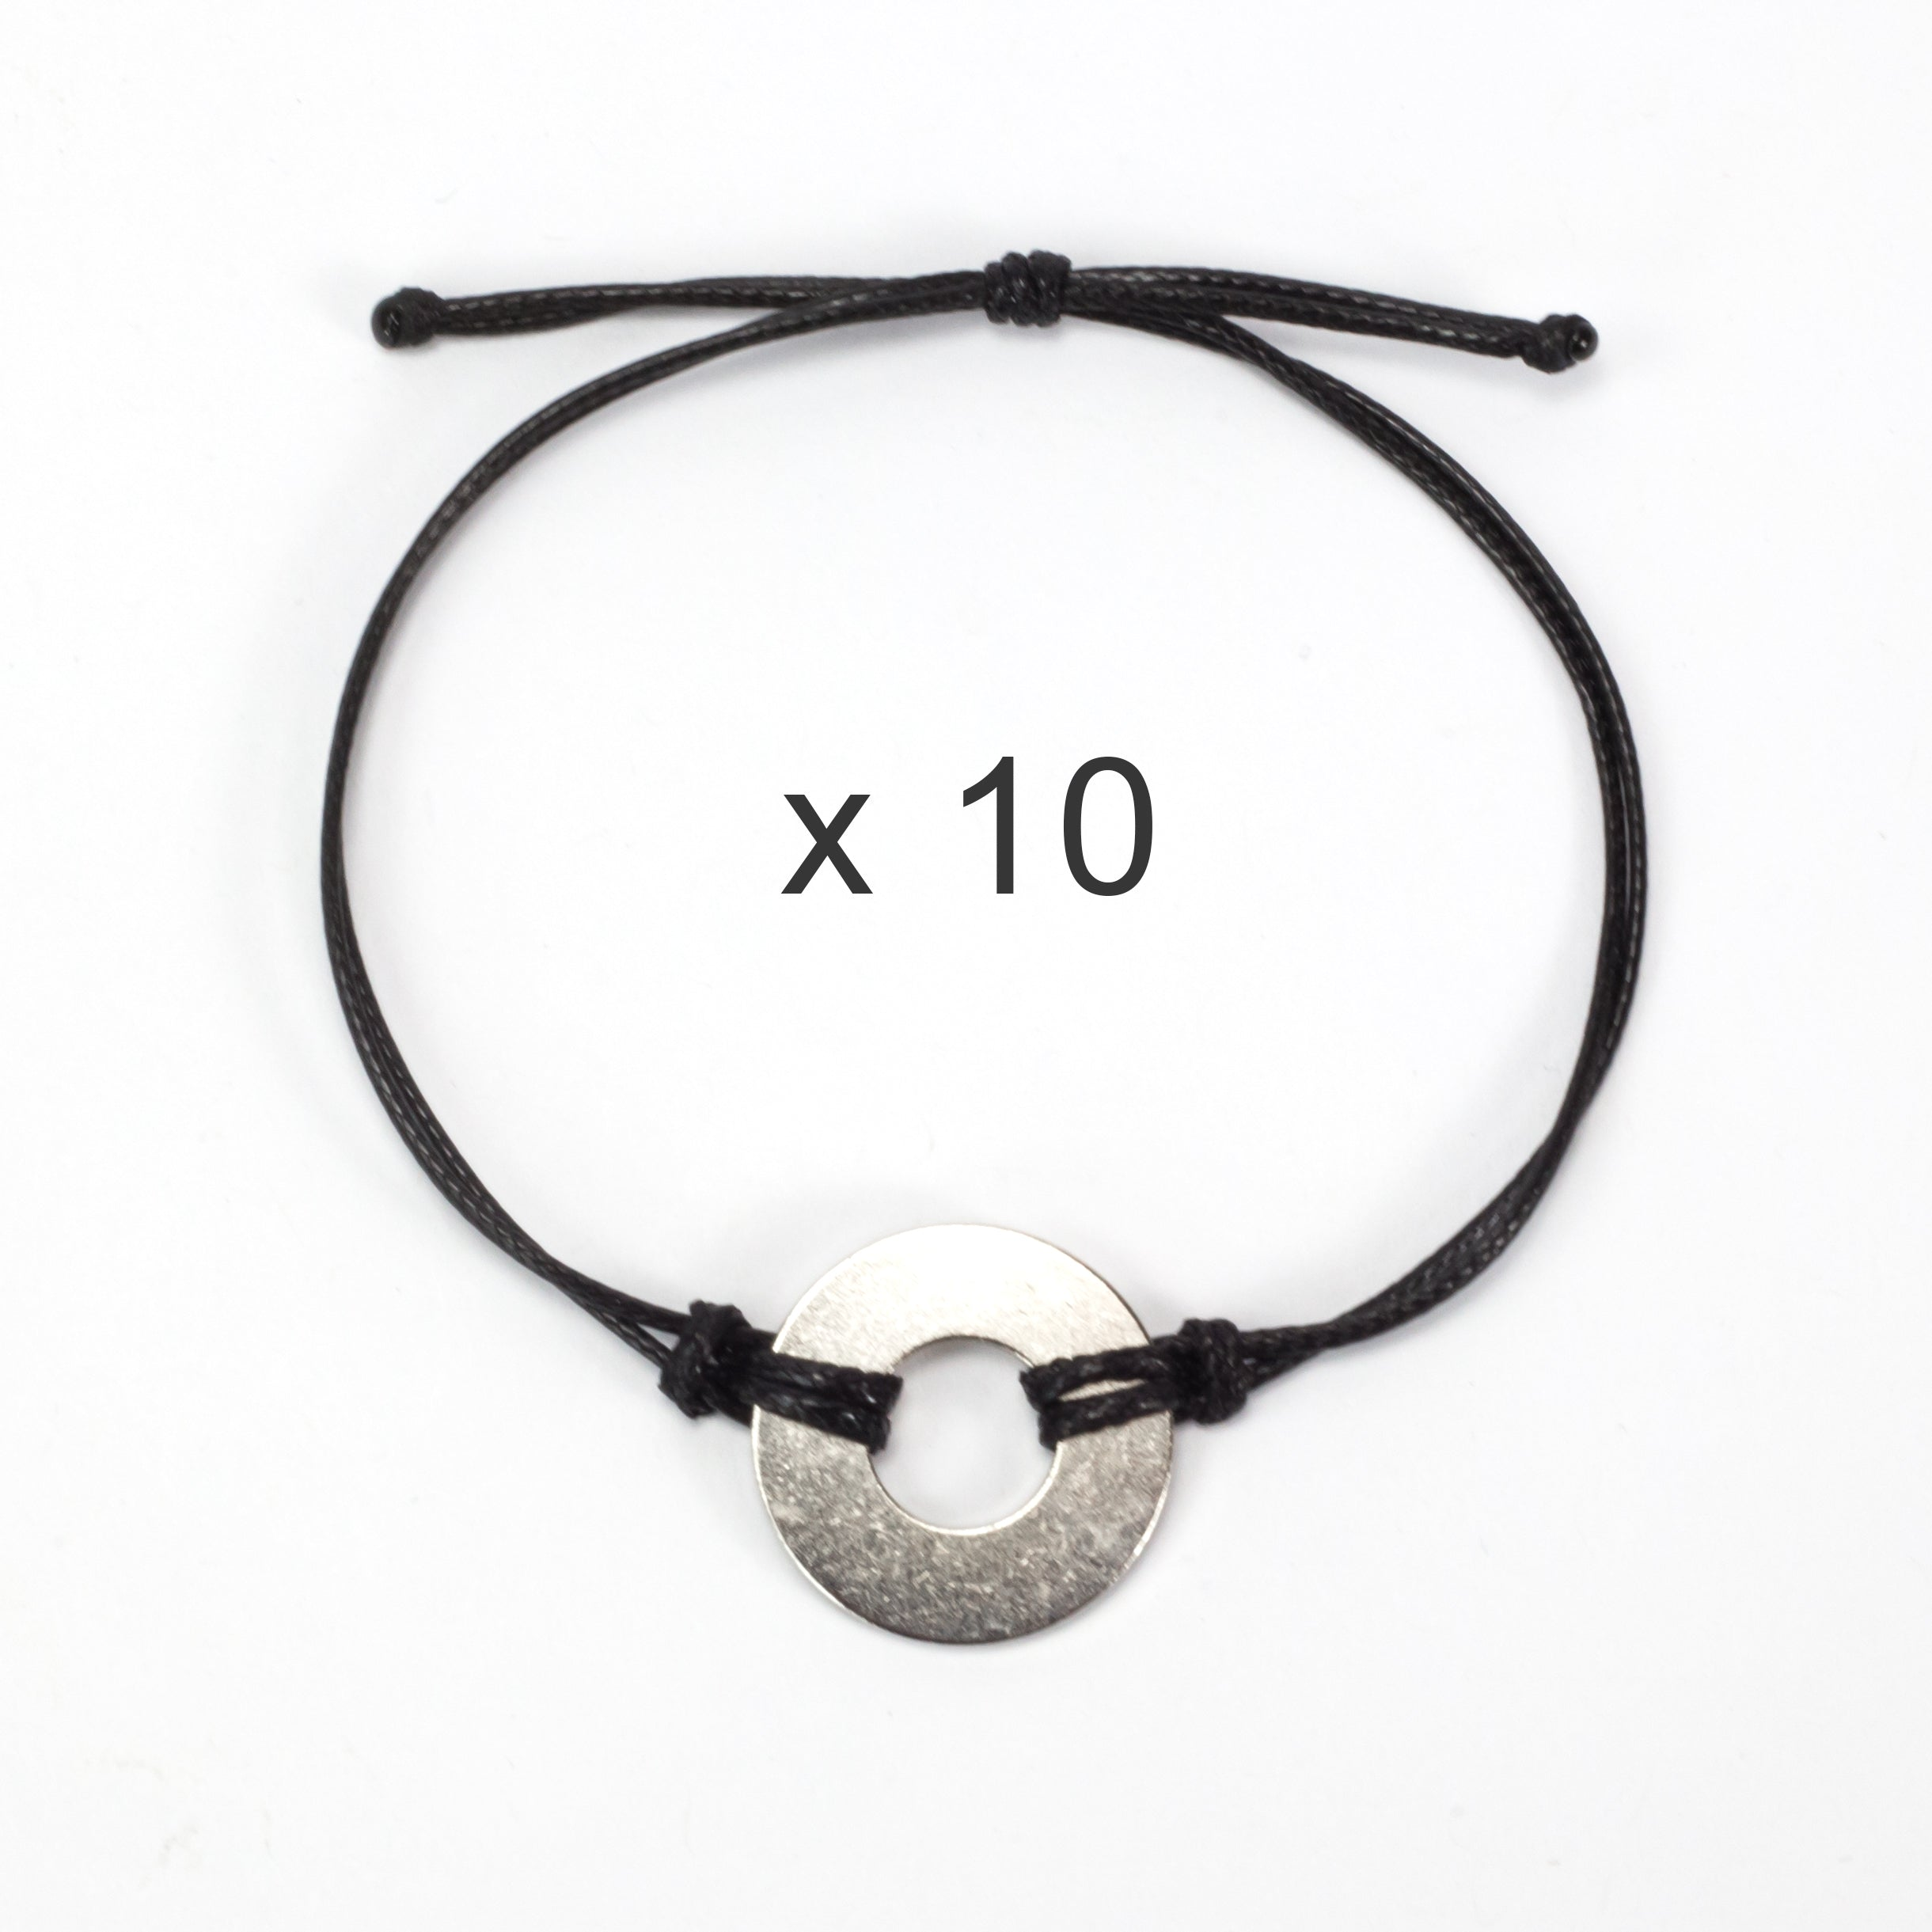 MyIntent Refill Classic Bracelets Black String set of 10 with Nickel tokens